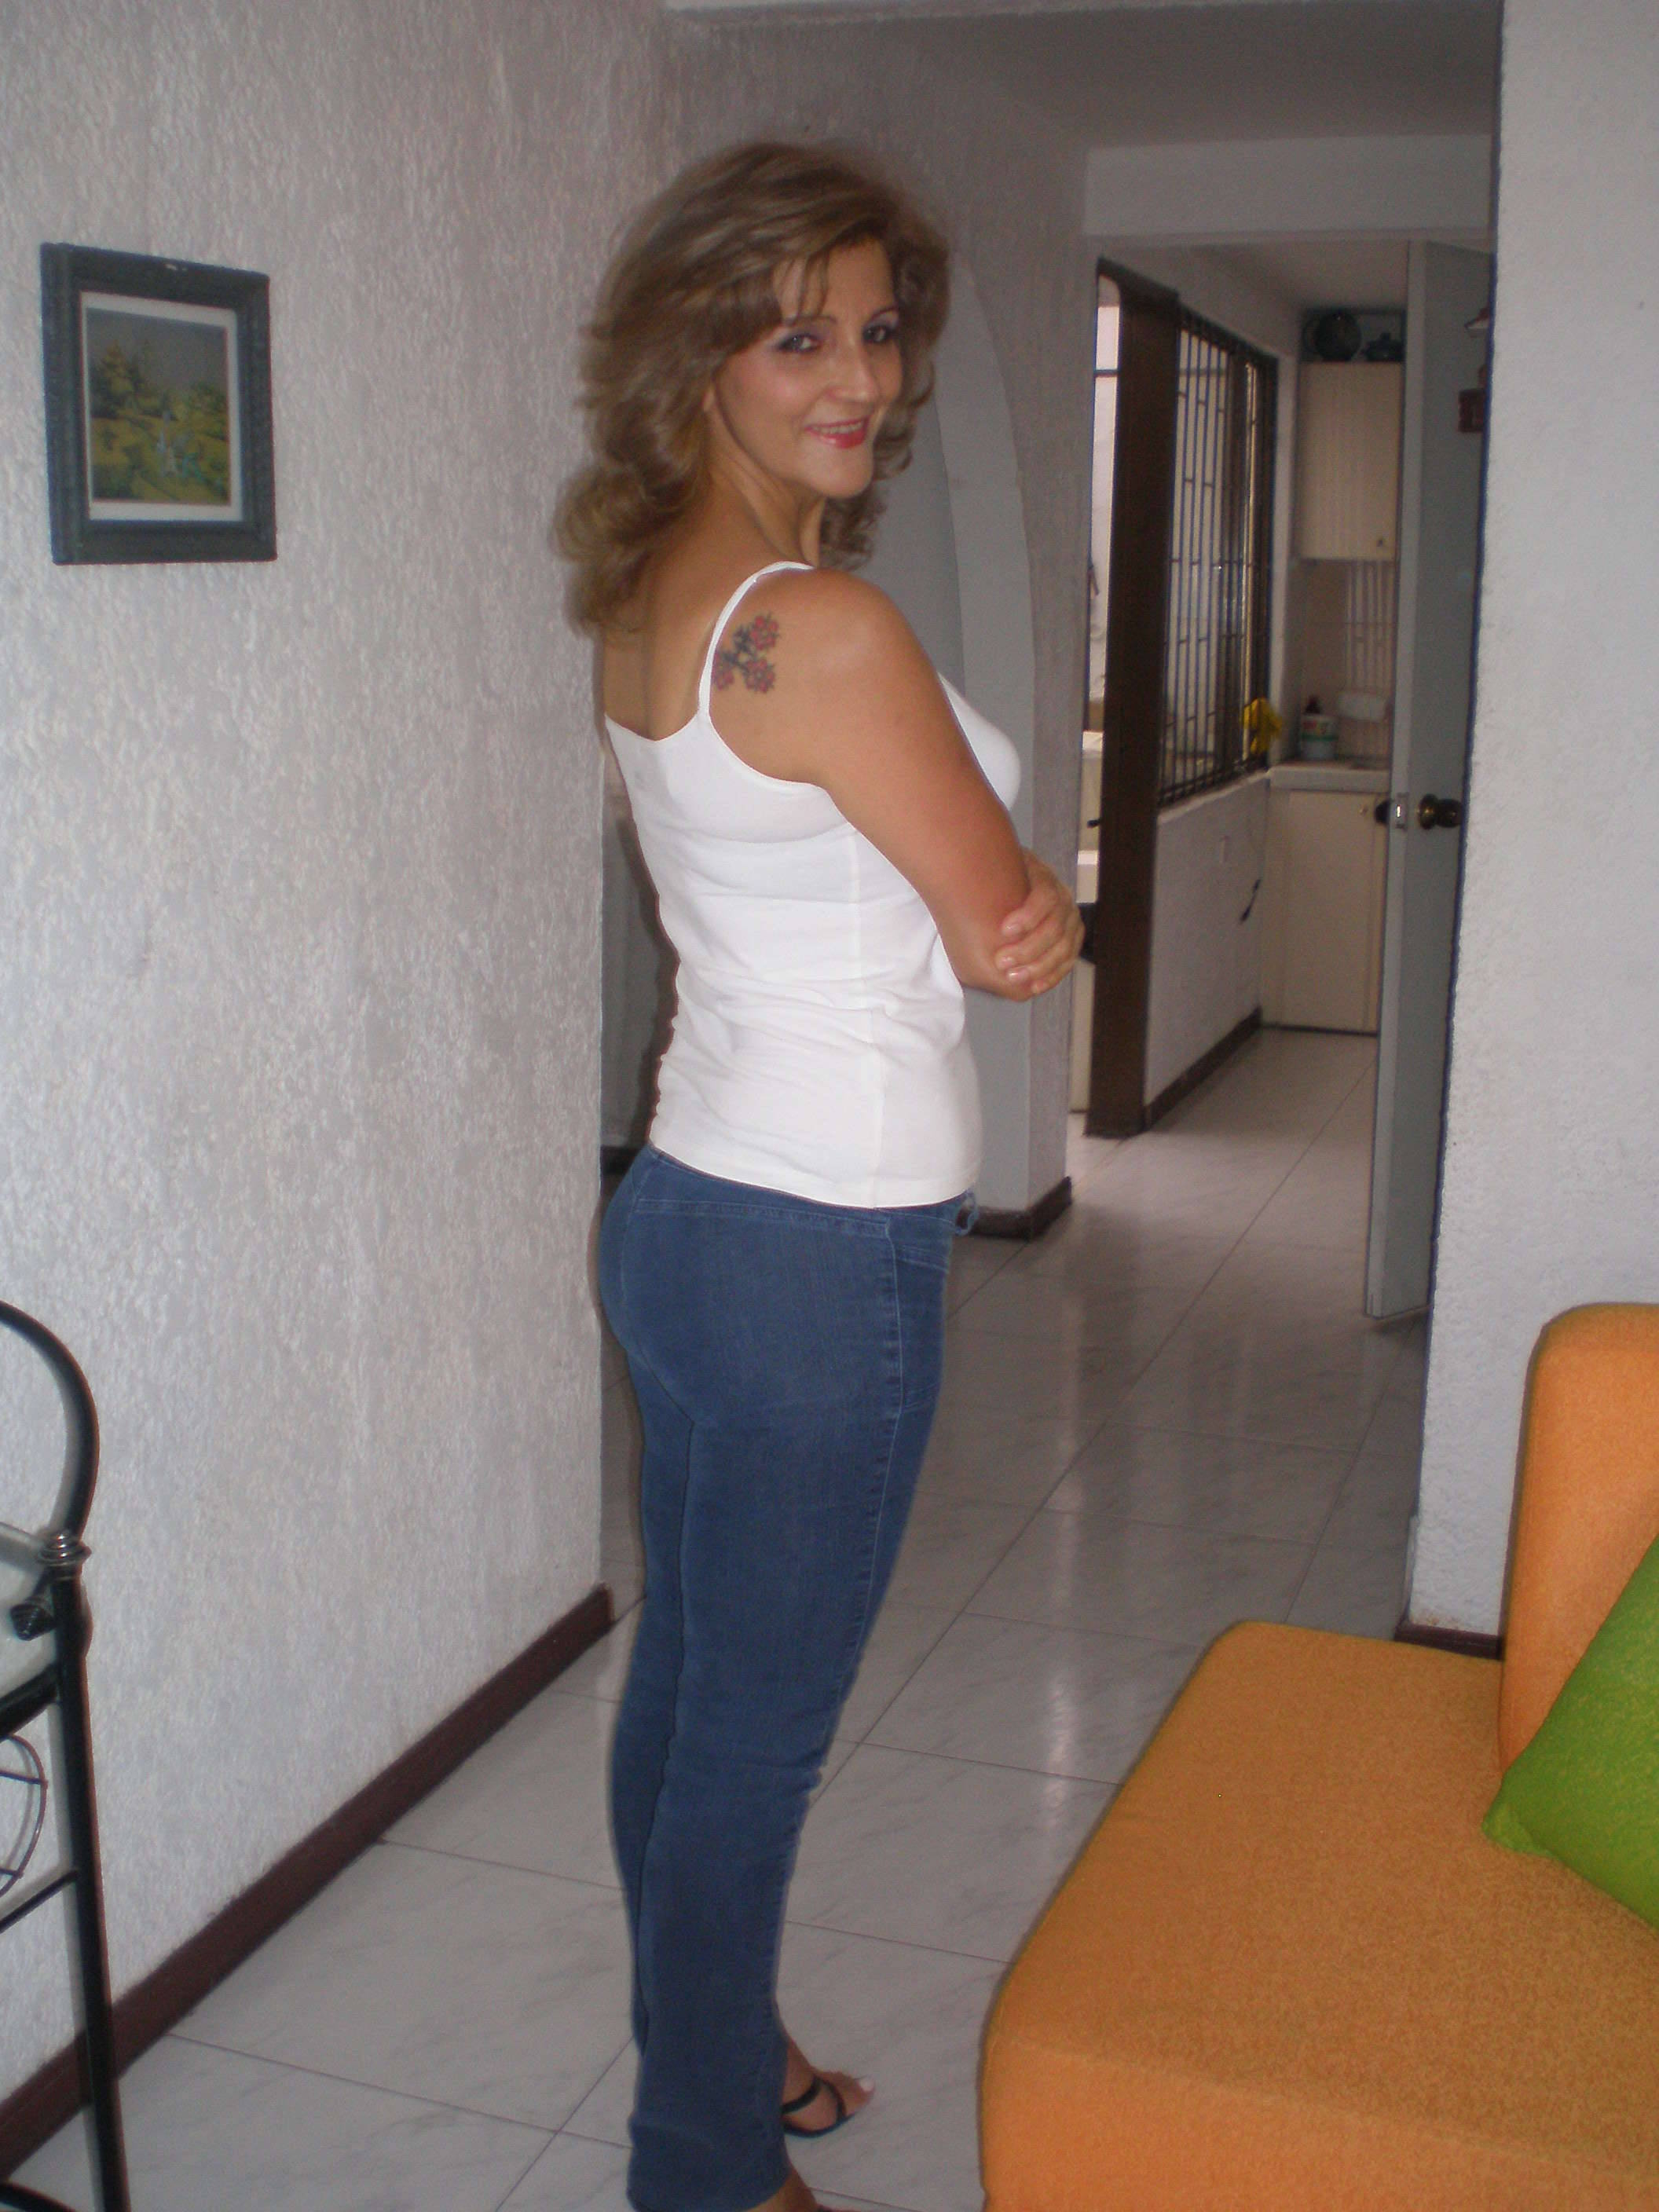 carlotta latin dating site Chat with carlotta, 22 today from arezzo, italy start talking to her totally free at badoo.